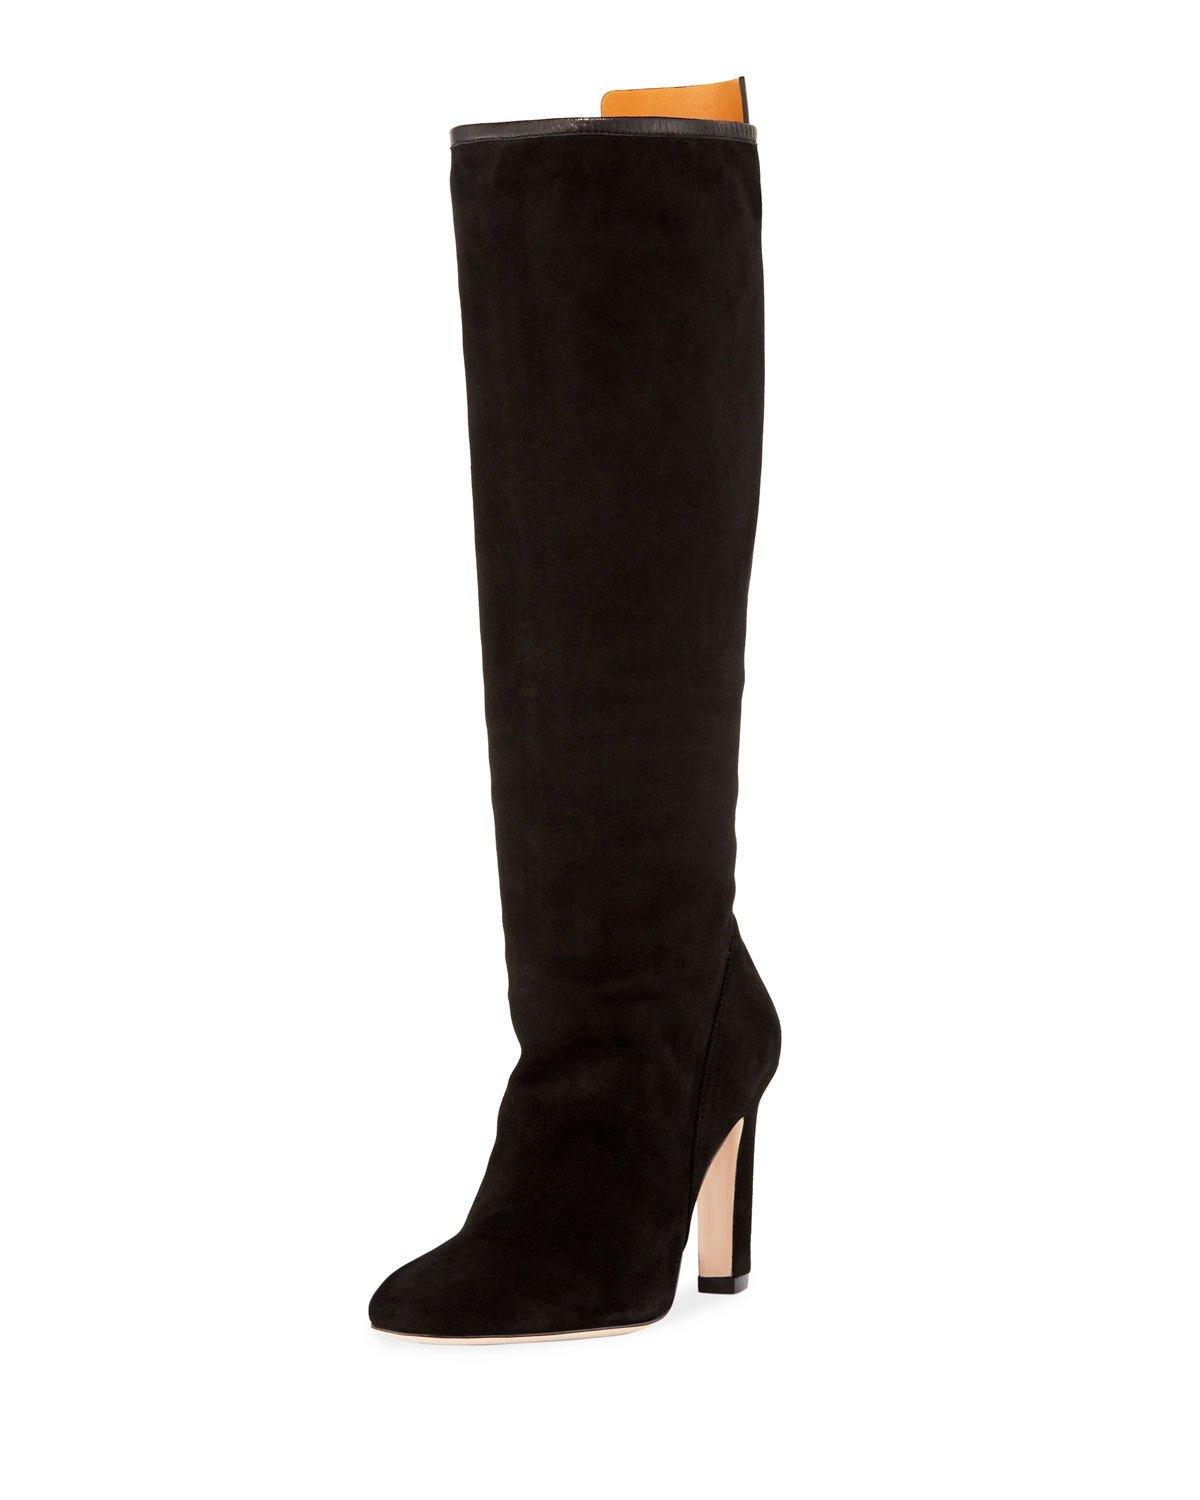 f2dc5d89968 Stuart Weitzman Women s Charlie Pointed-Toe Knee-High Suede High-Heel Boots  In